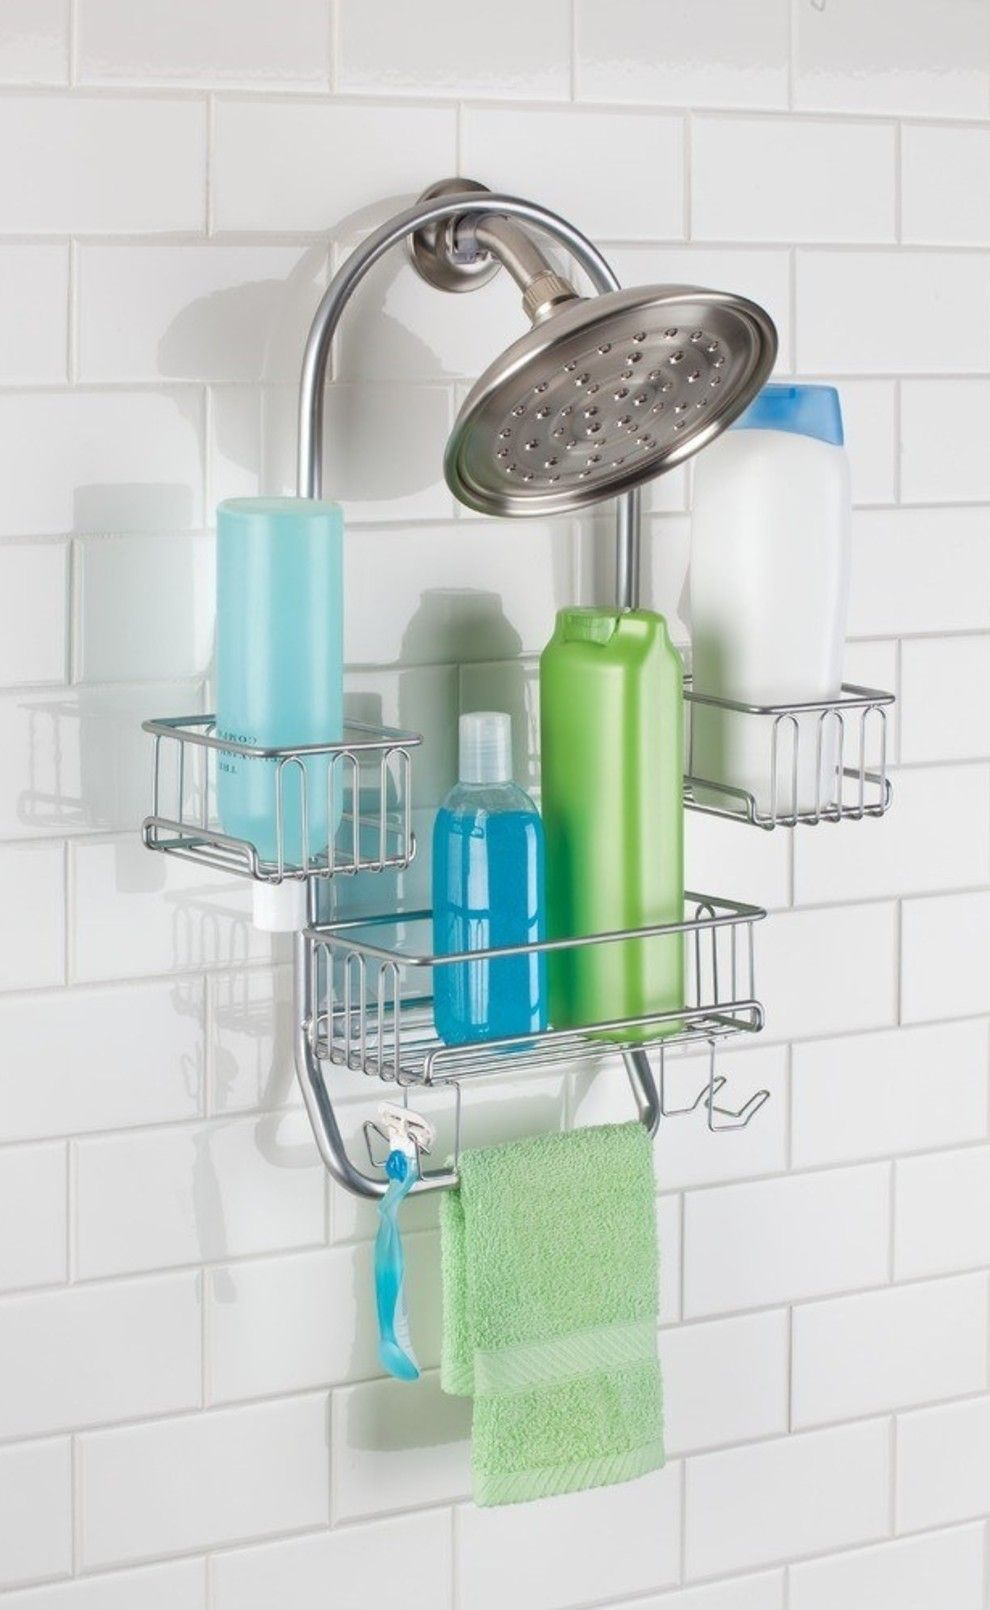 31 Products From Jet To Upgrade Every Room In Your House Shower Caddy Mdesign Bathroom Shower